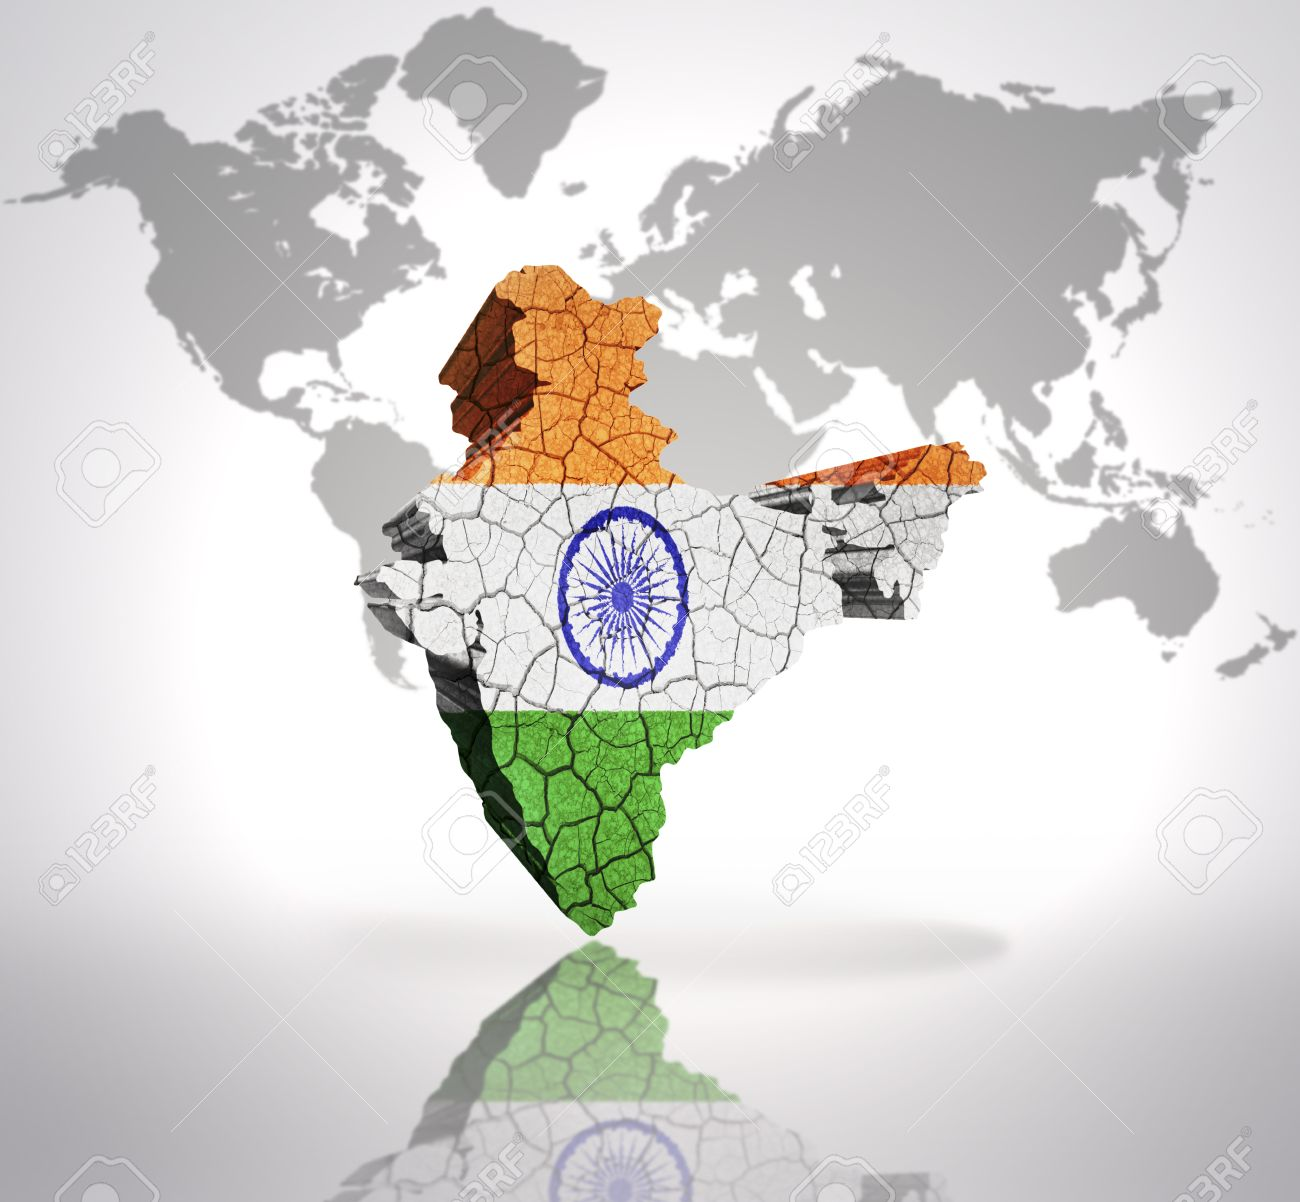 Map of india with indian flag on a world map background stock photo map of india with indian flag on a world map background stock photo 32802531 gumiabroncs Gallery